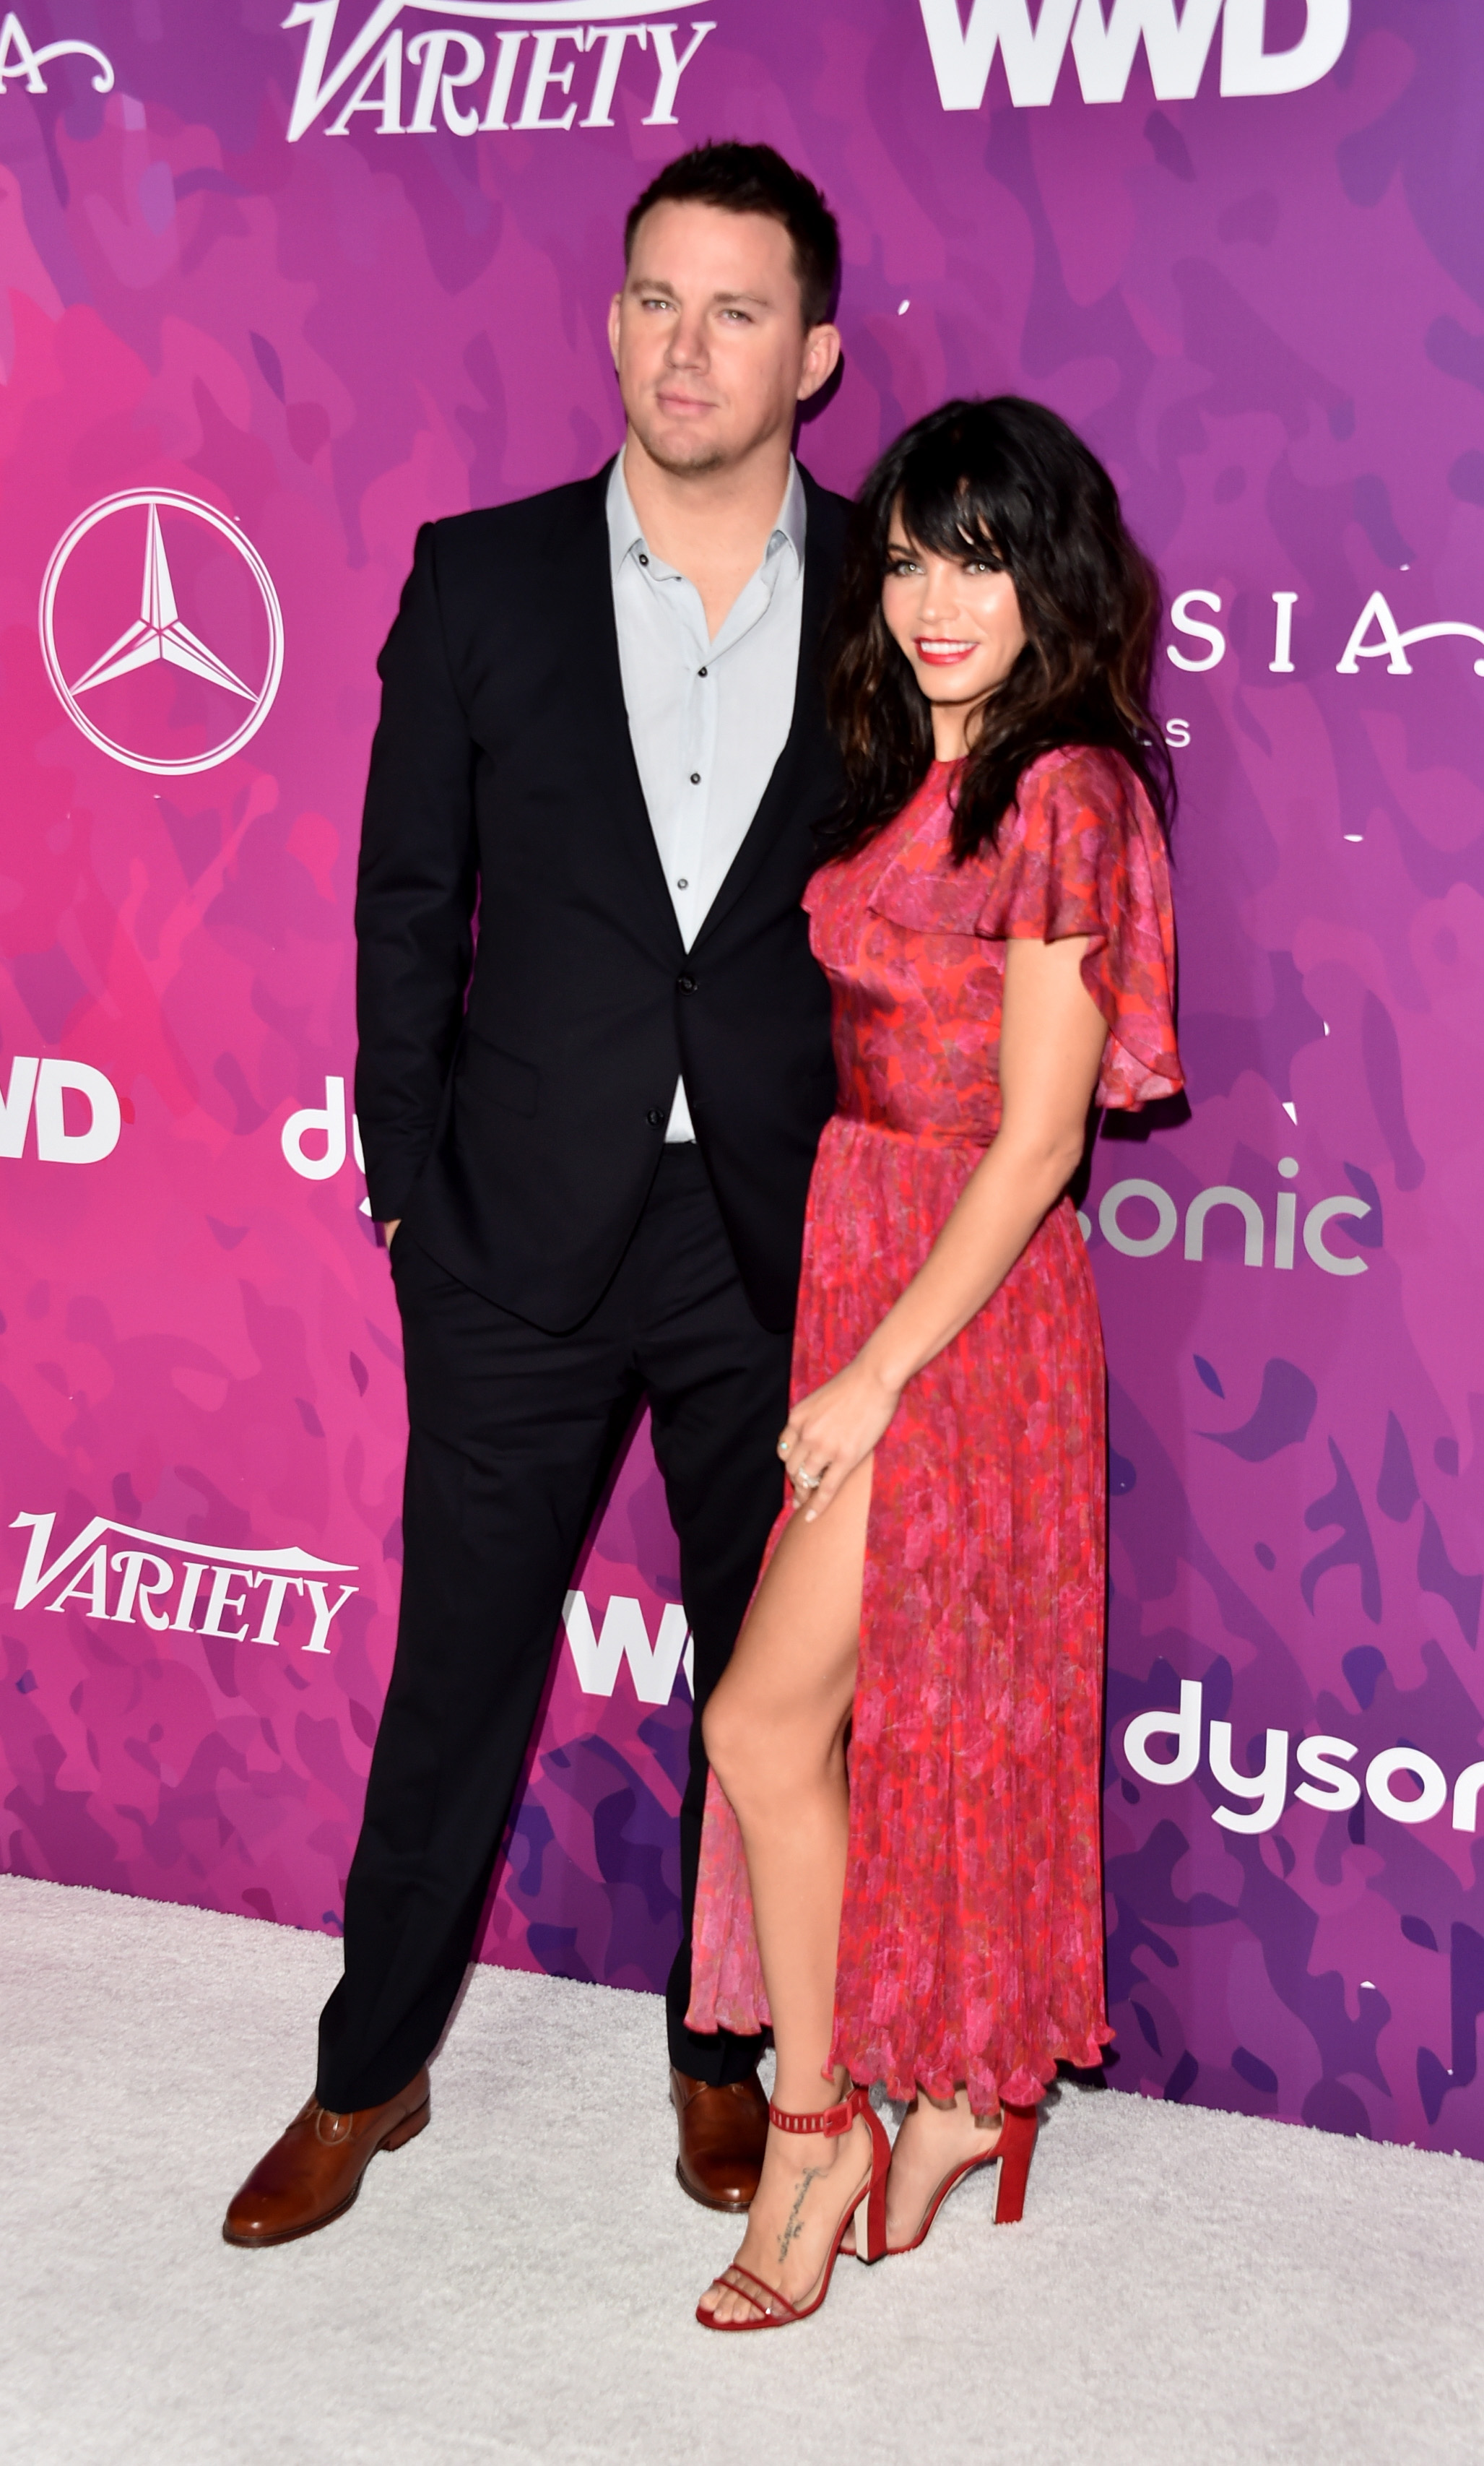 Channing-Tatum-and-Jenna-Dewan-Tatum-attend-the-2nd-Annual-StyleMaker-Awards-hosted-by-Variety-and-WWD-at-Quixote-Studios-West-Hollywood-on-November-17-2016-in-West-Hollywood